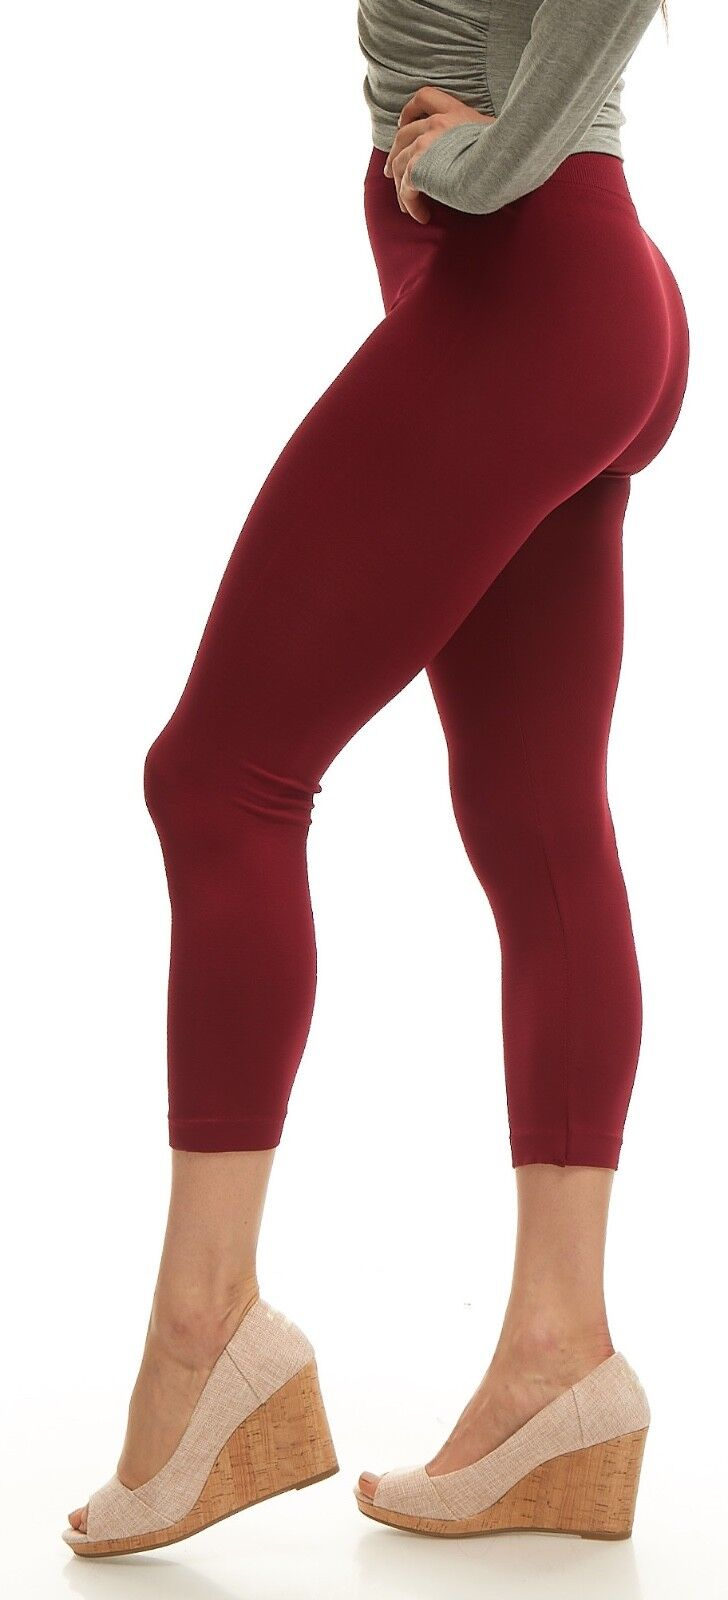 Leggings for Women LMB Basic Seamless Capri Length in Many Colors Halloween lot Clothing, Shoes & Accessories